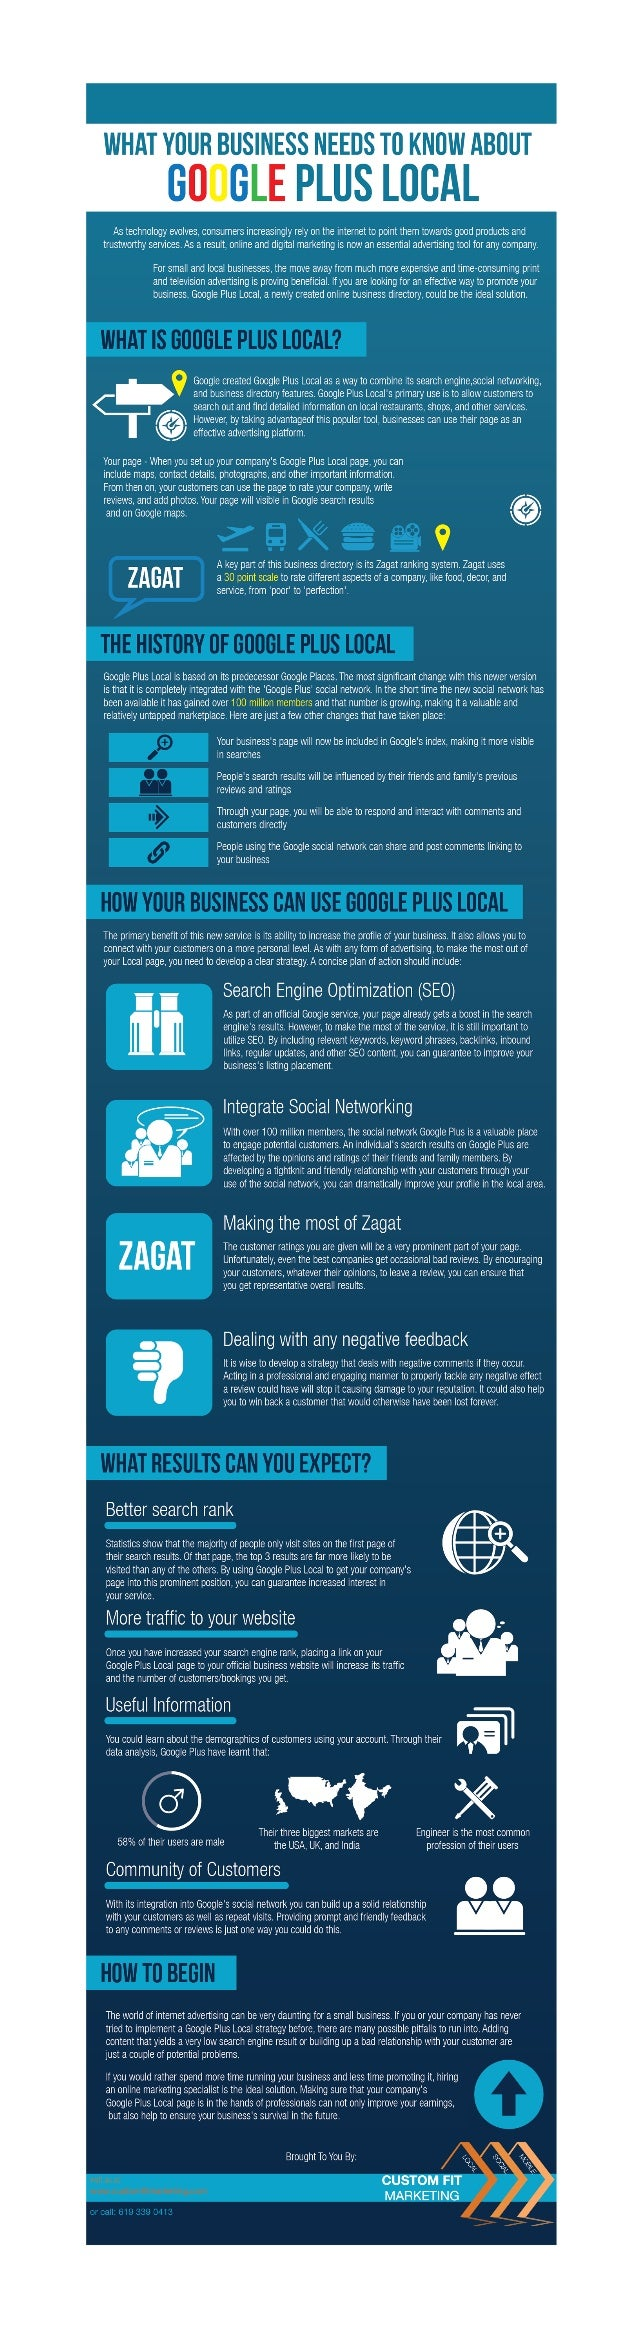 What Your Business Needs to Know About Google+ Local